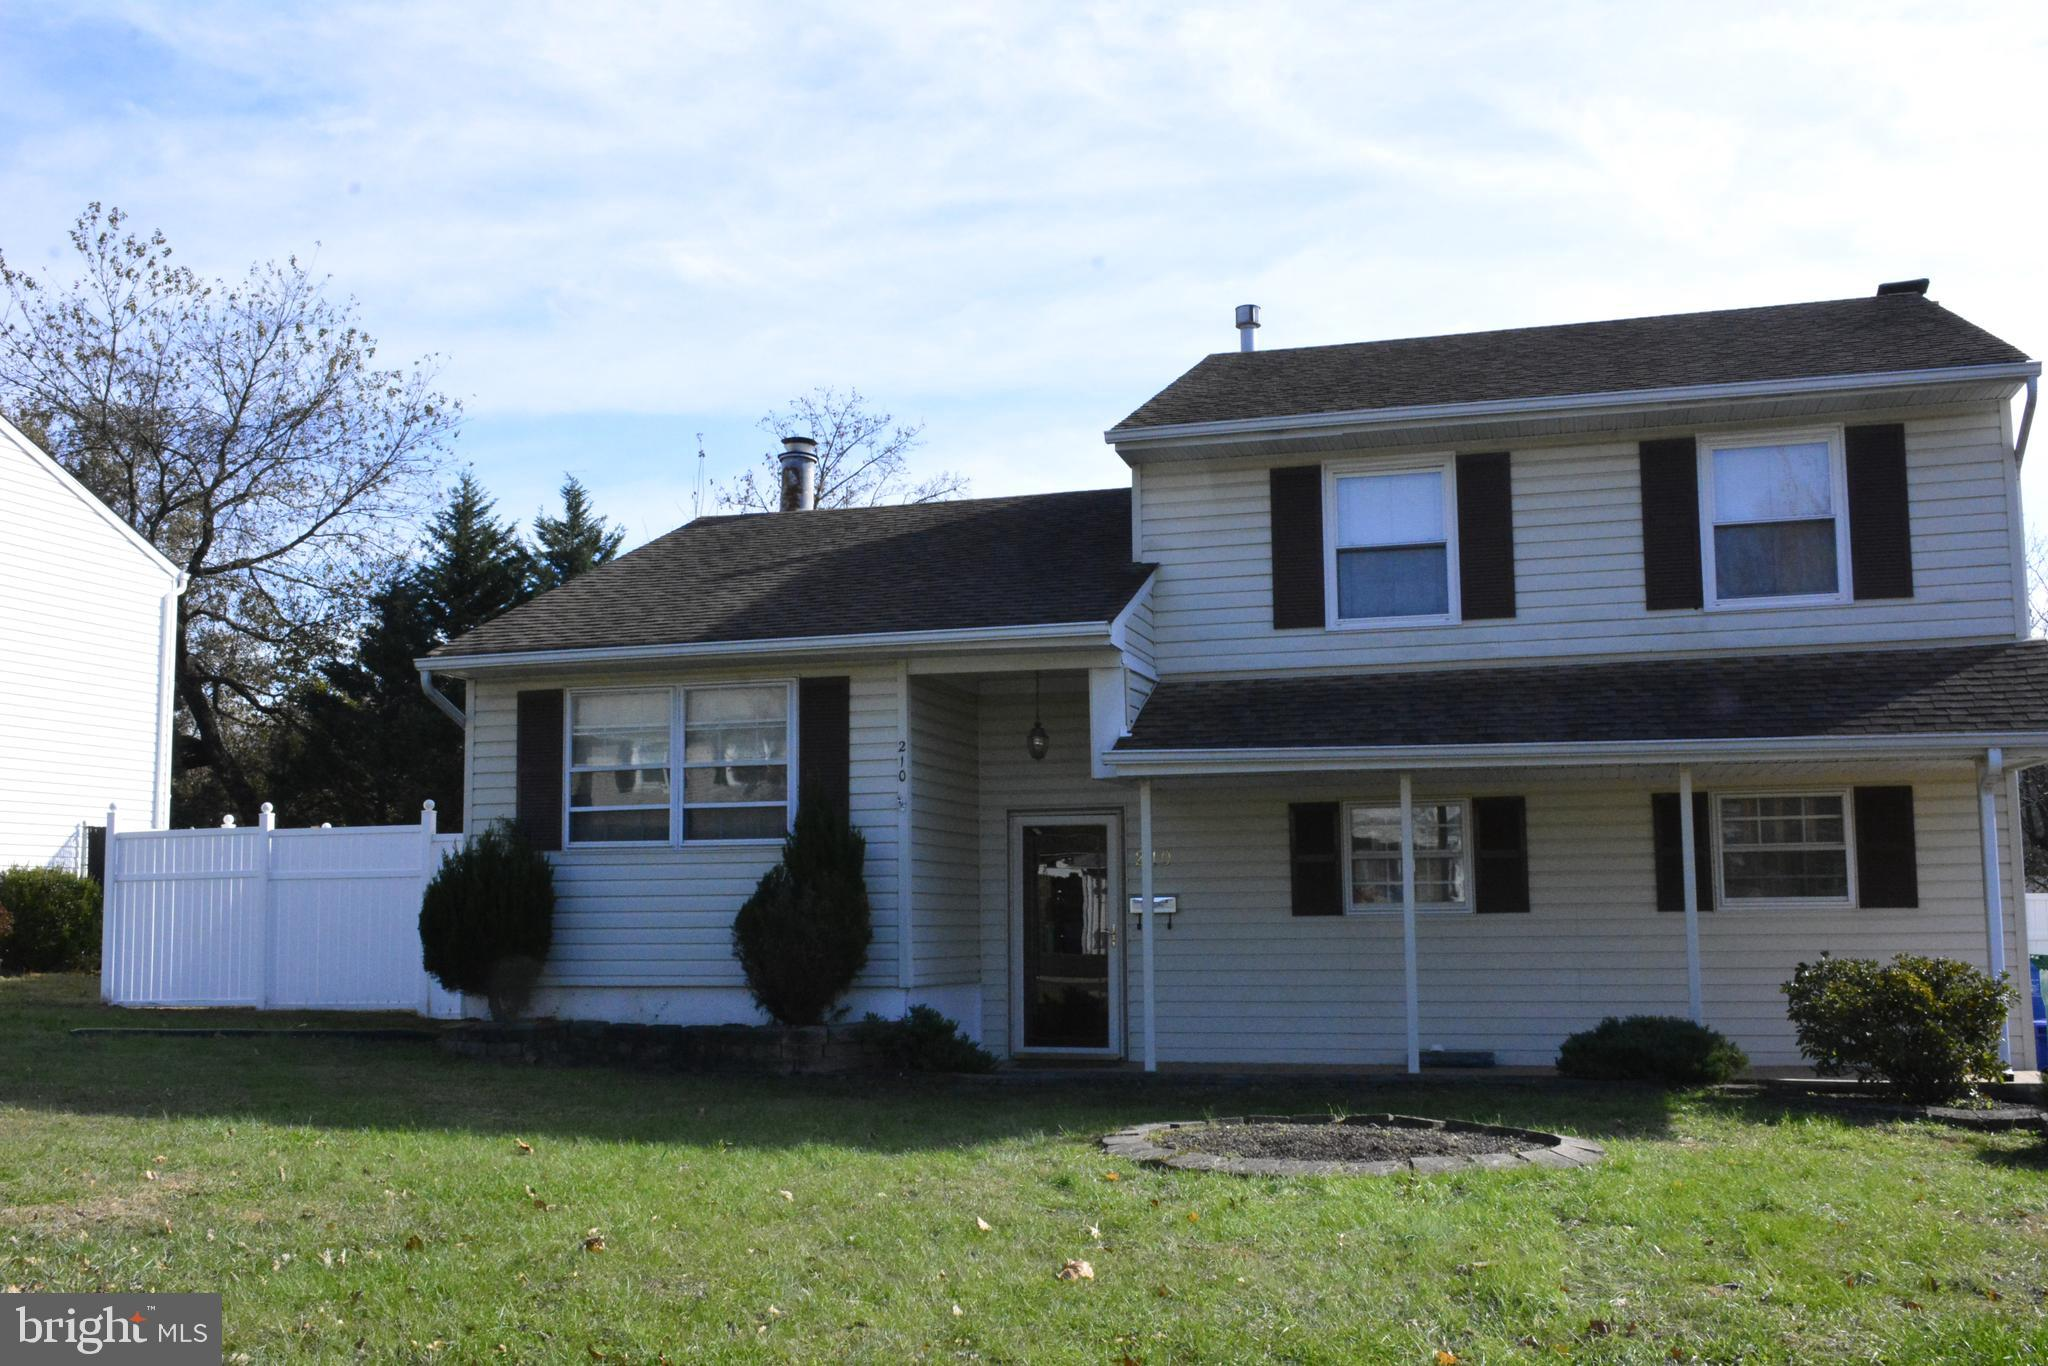 210 WELSFORD ROAD, FAIRLESS HILLS, PA 19030